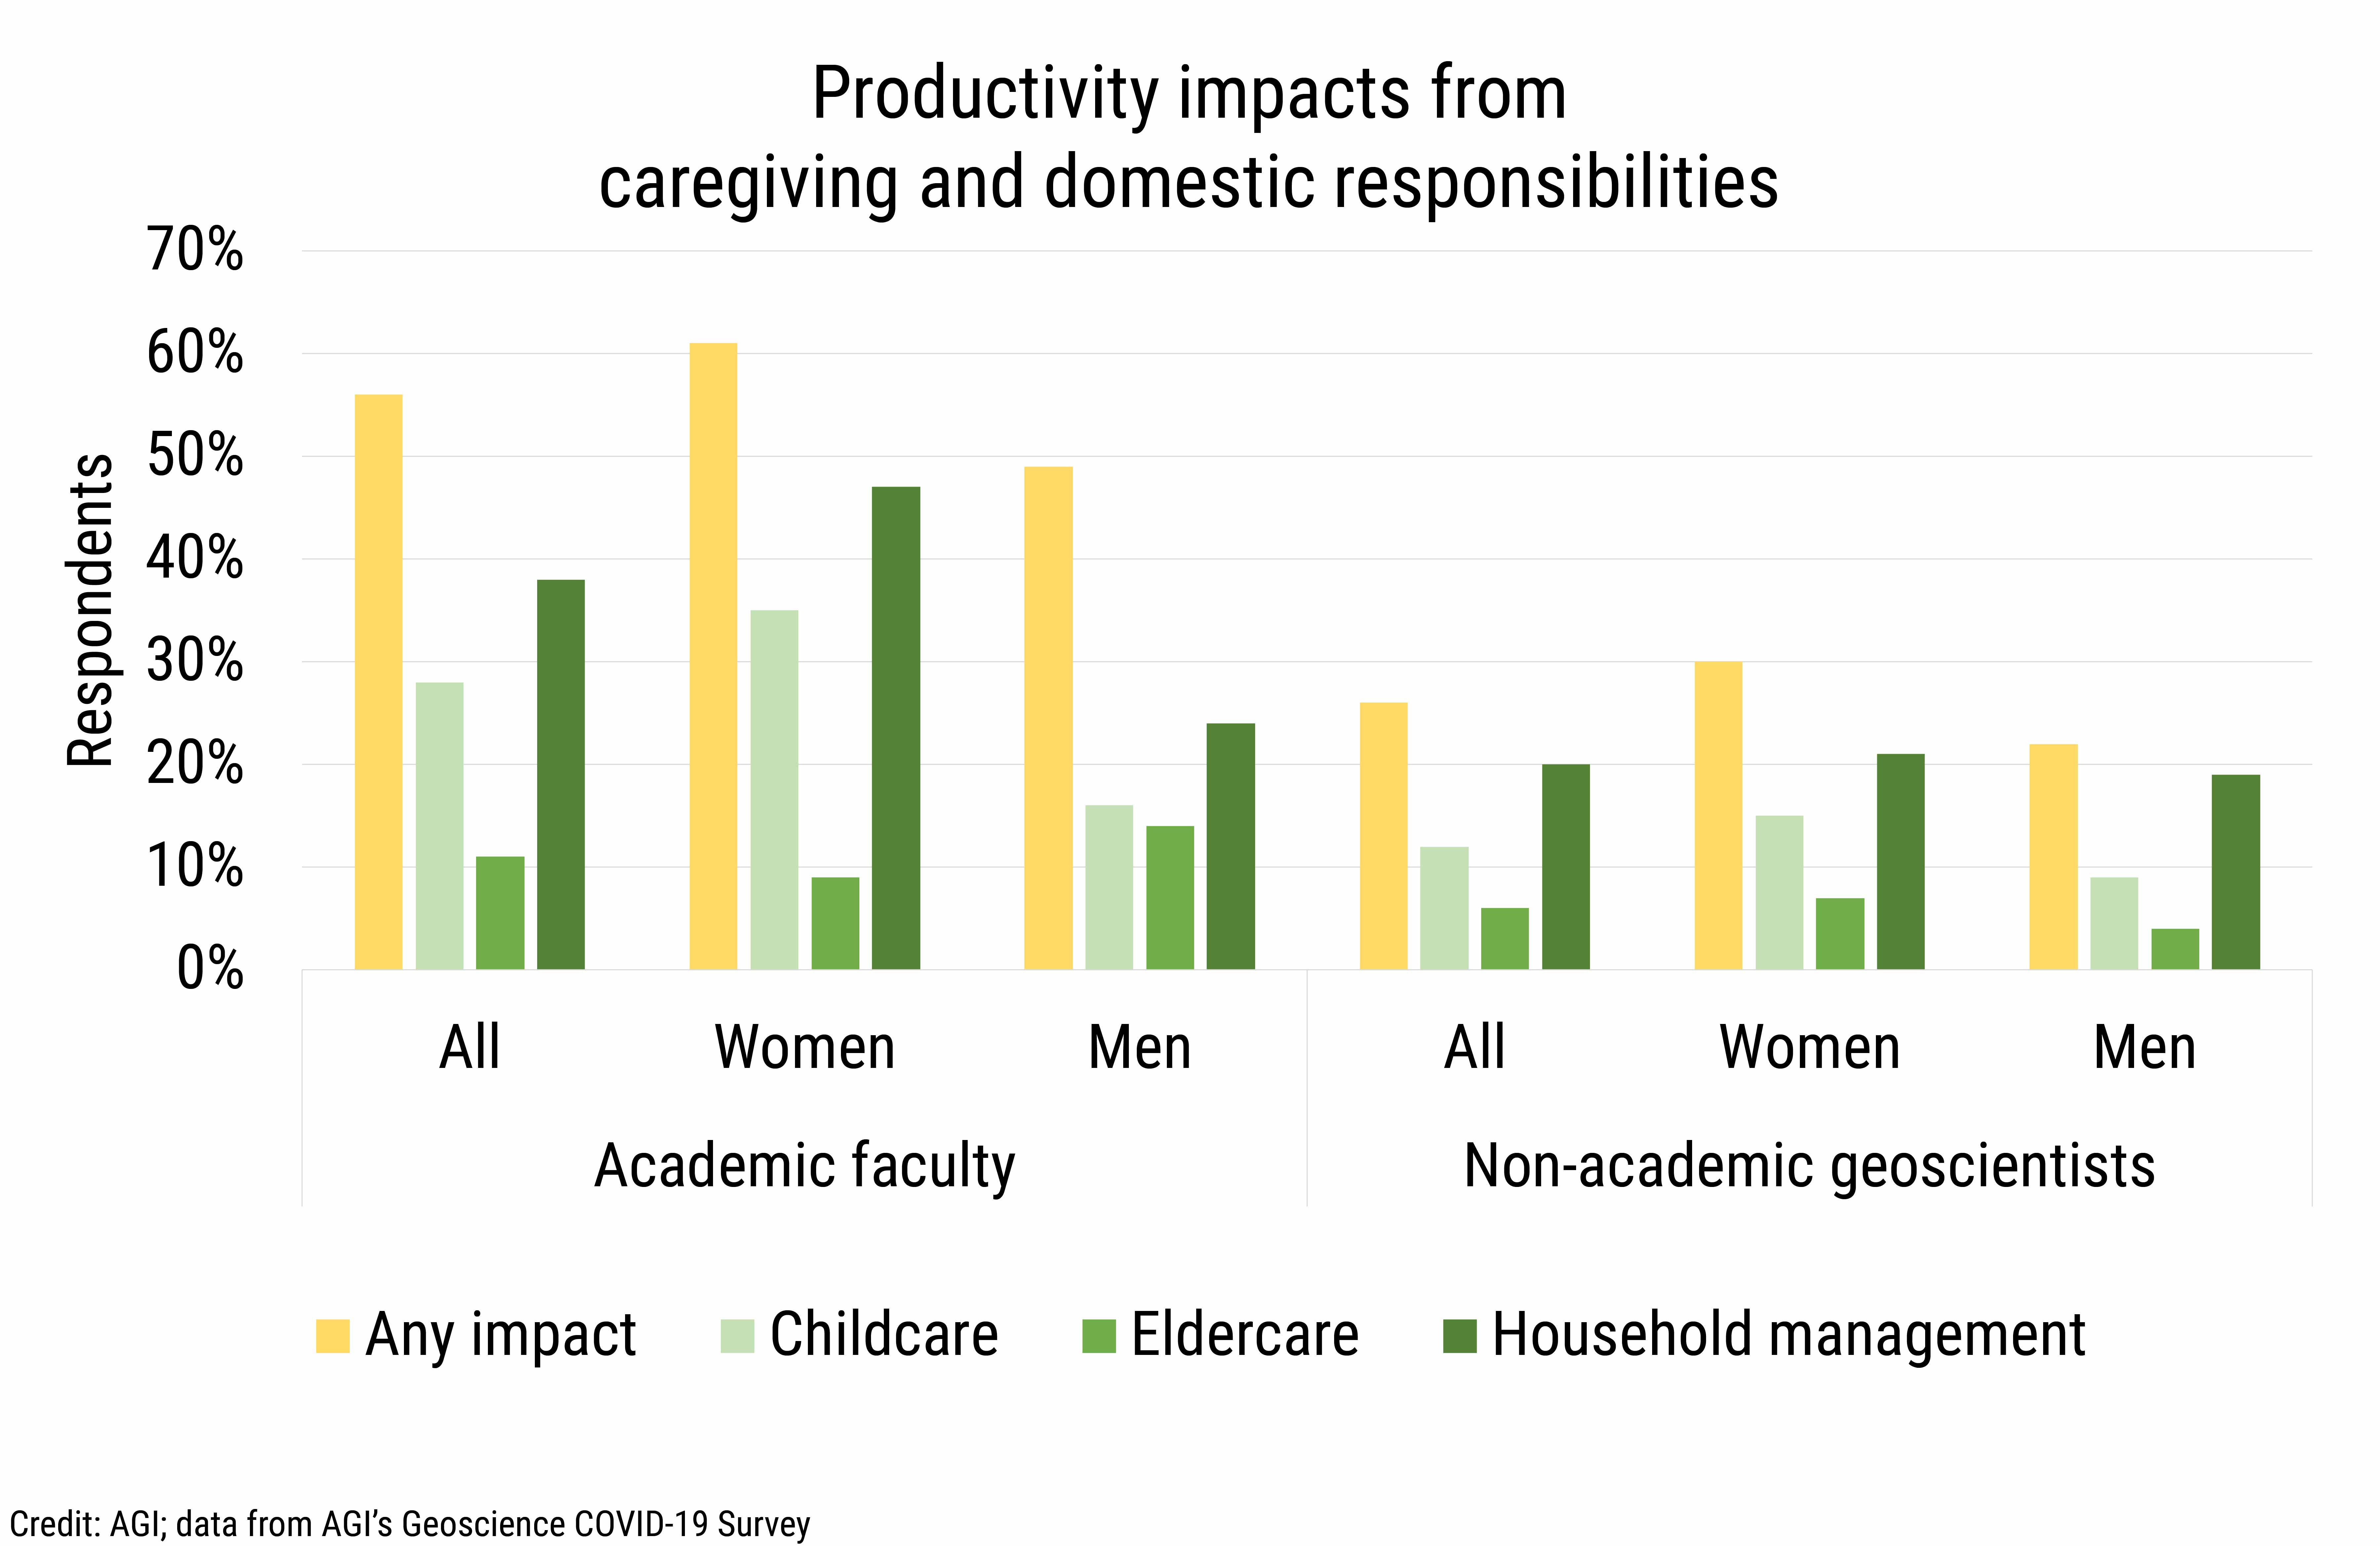 DB_2021-020 chart 01: Productivity impacts from caregiving and domestic responsibilities (Credit: AGI; data from AGI's Geoscience COVID-19 Survey)